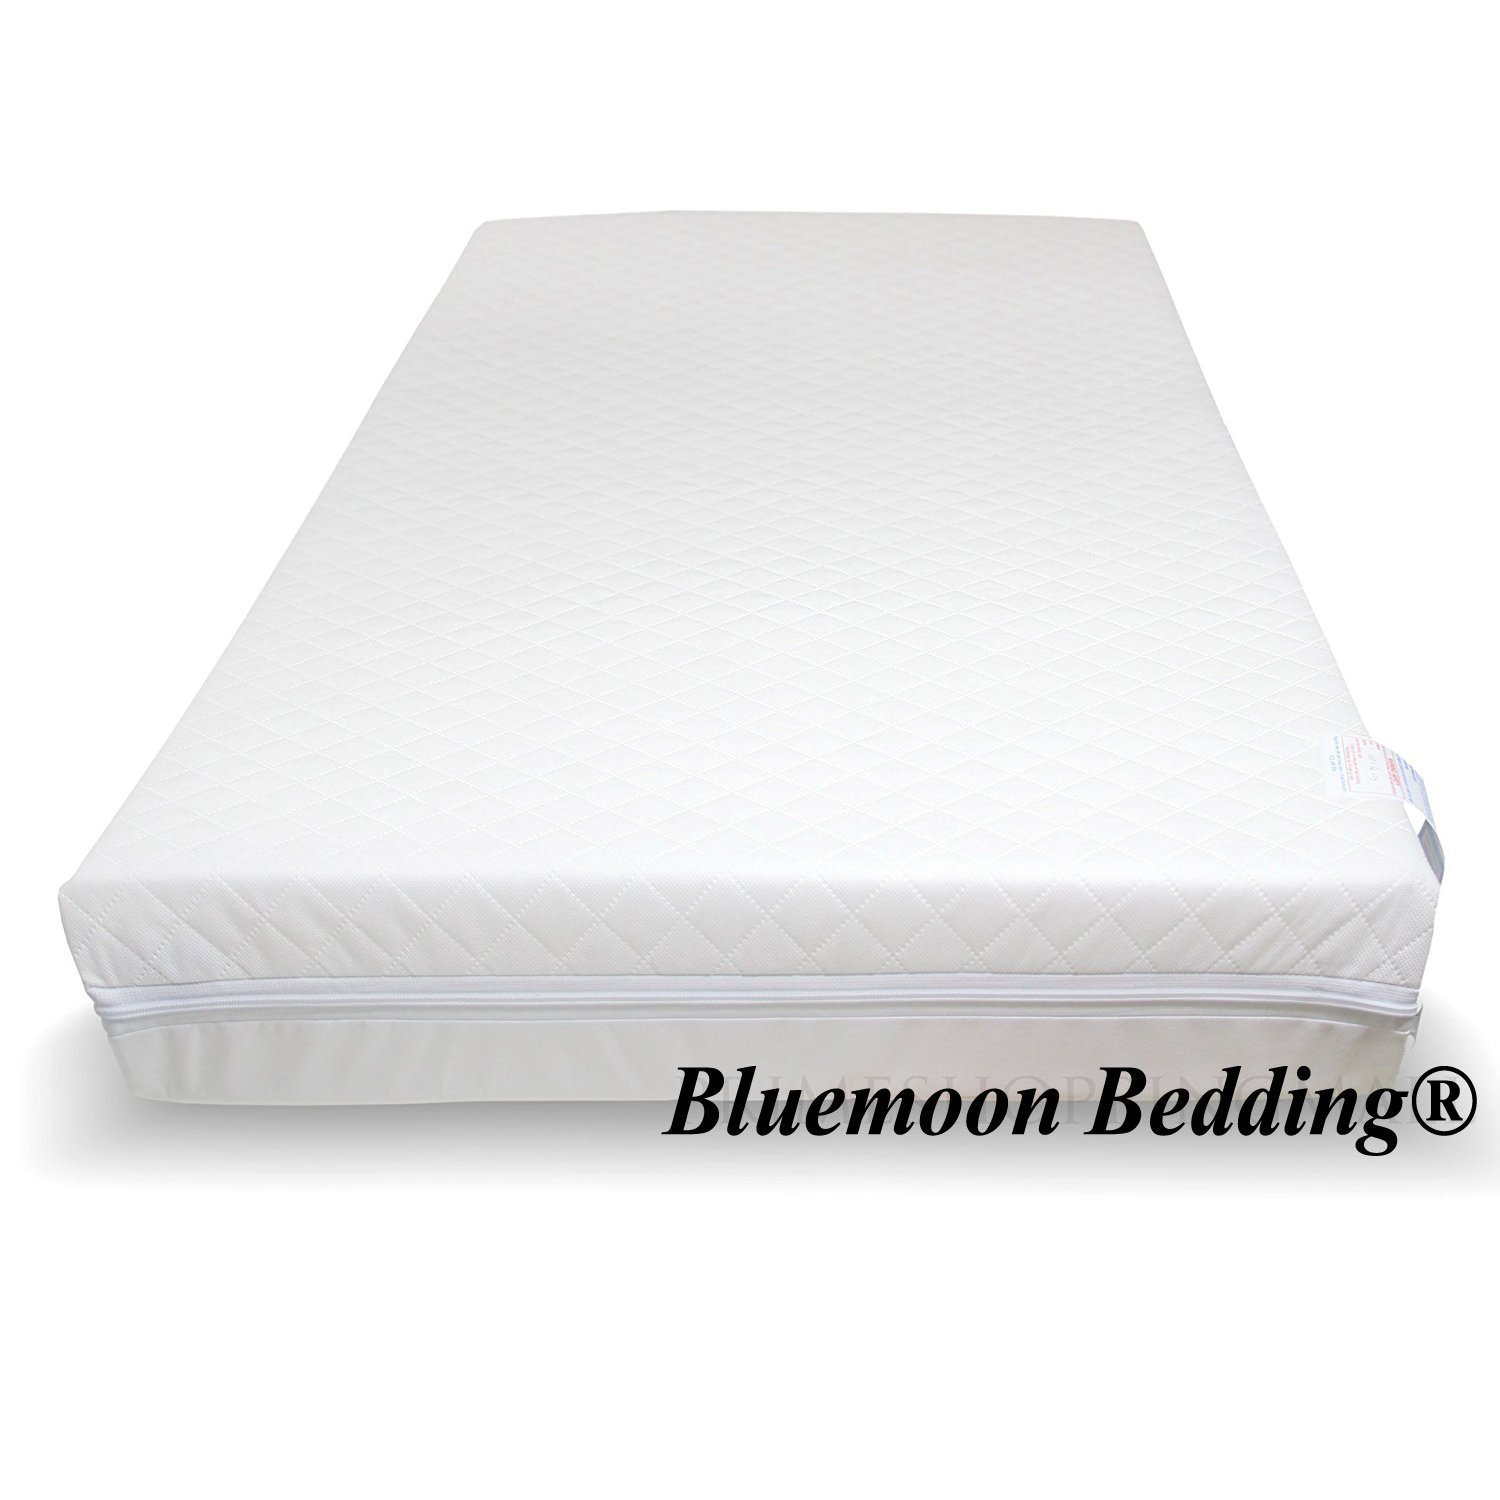 Baby Travel Cot Mattress 110 x 54 x 10 CM QUILTED Breathable Antiallergenic - UK Made - ATM-Baby Brand TOPSTYLE